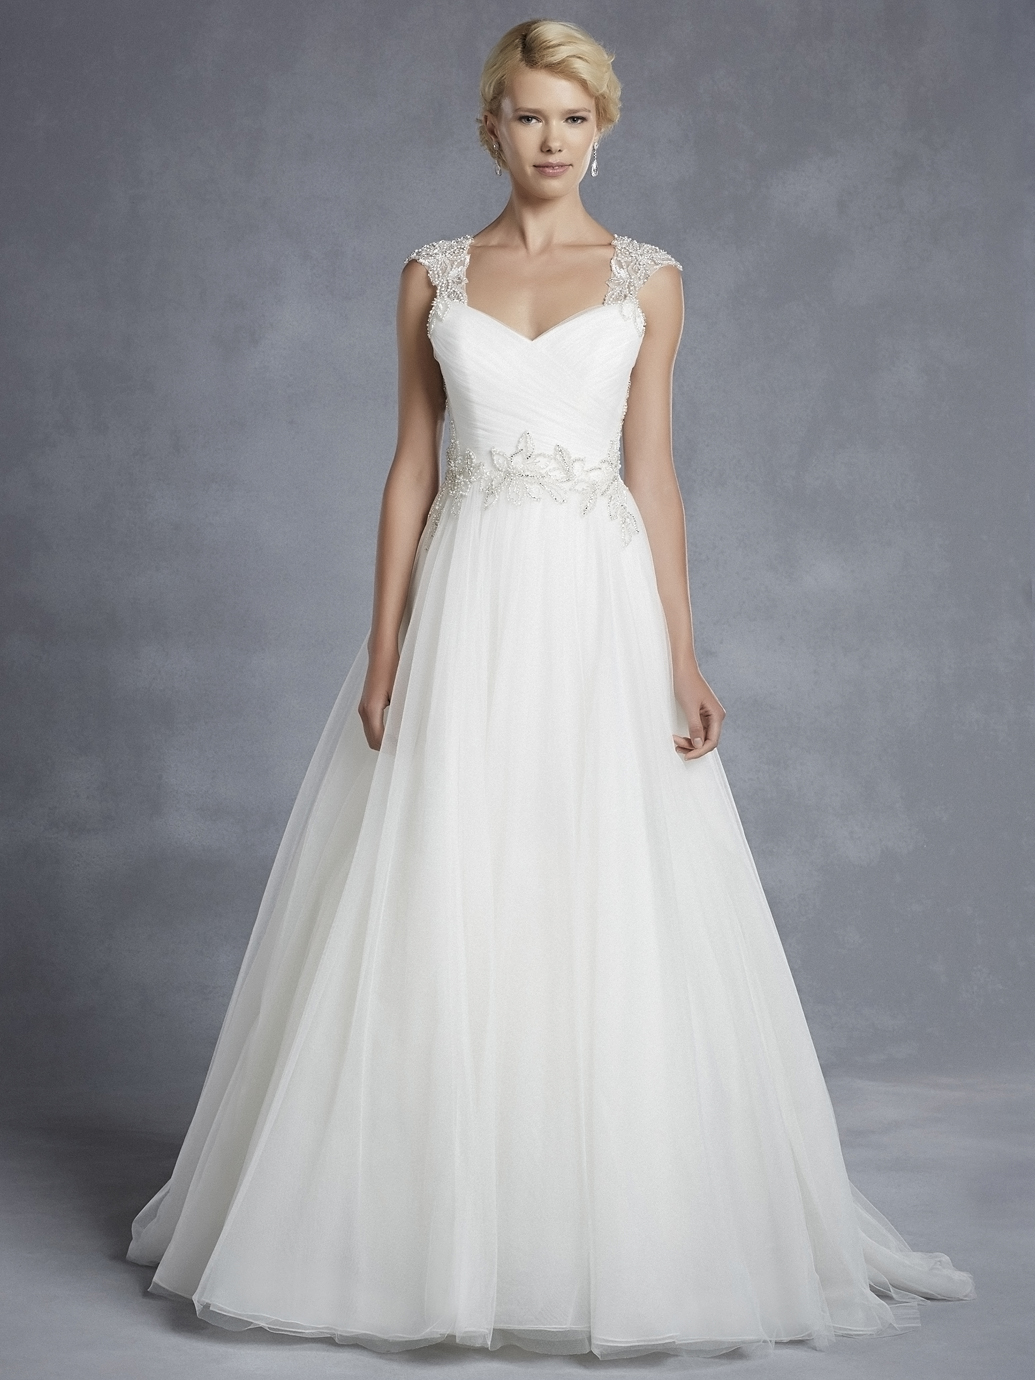 Wedding Dress Alterations Halifax : Blue by enzoani halifax sales gown wedding gowns